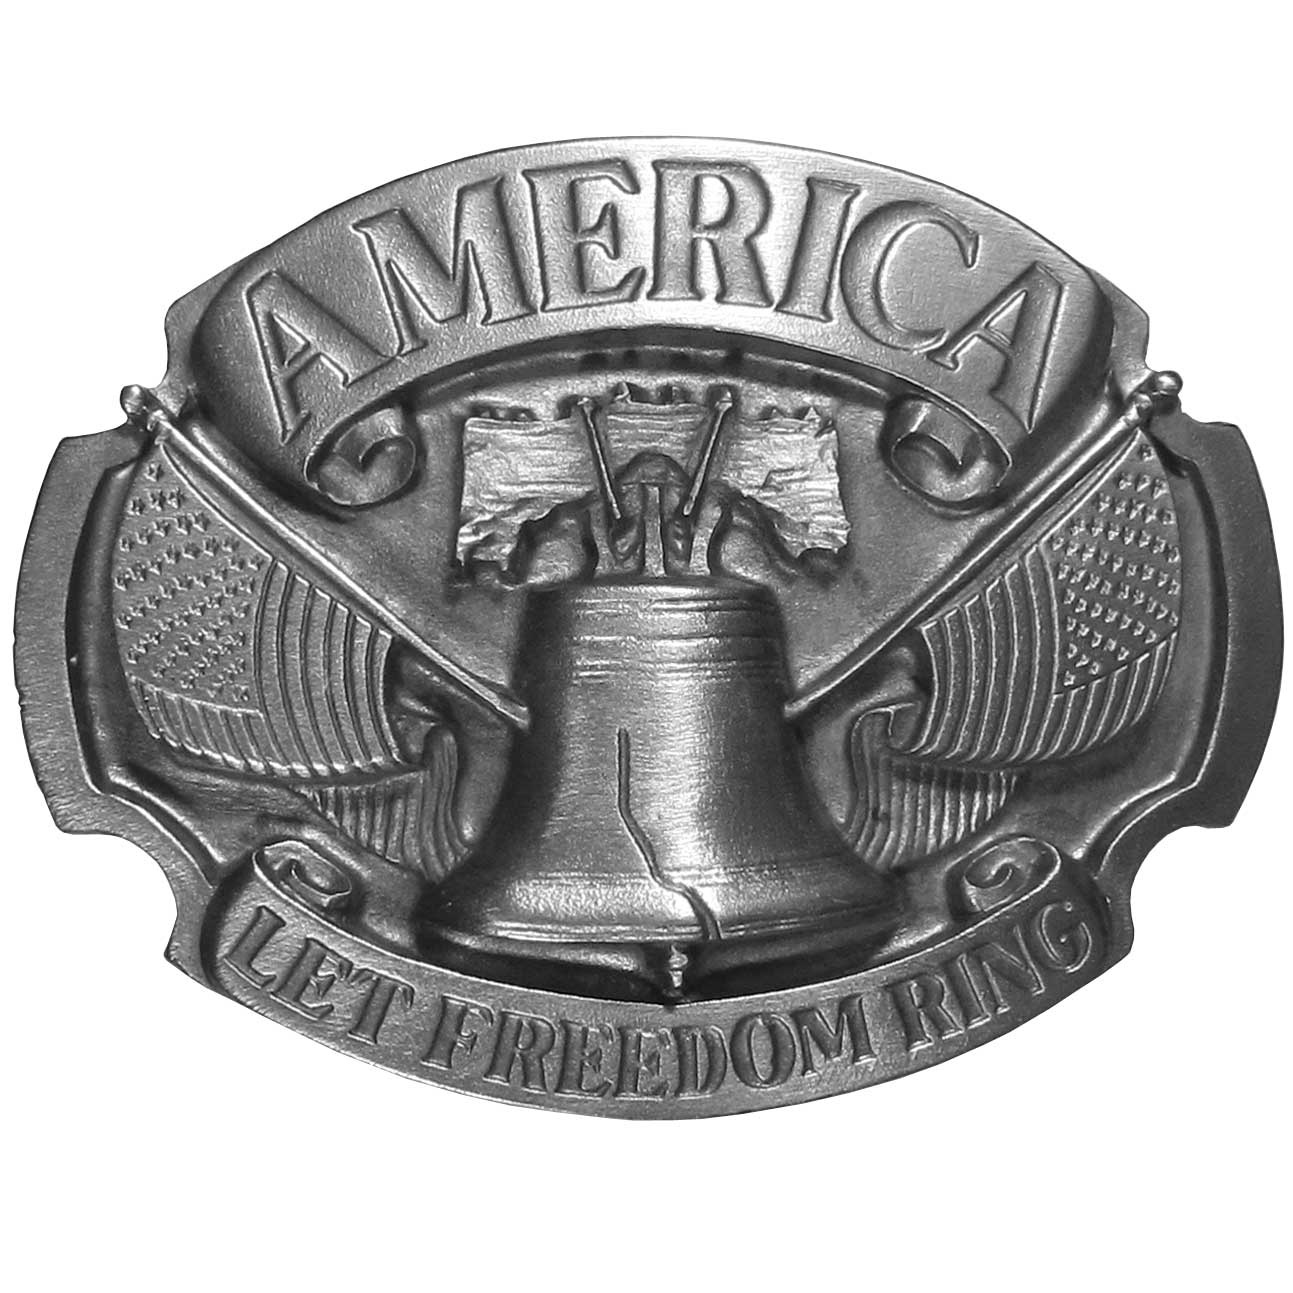 "Let Freedom Ring Antiqued Belt Buckle - ""Show off your patriotism.  This beautiful buckle has """"America"""" in a banner on top and """"Let Freedom Ring"""" on the bottom.  The Liberty Bell is in the middle with a United States flag on each side.  This exquistely carved buckle is made of fully cast metal with a standard bale that fits up to 2"""" belts.  Siskiyou's unique buckle designs often become collector's items and are unequaled in crafstmanship.  Made in the USA."""